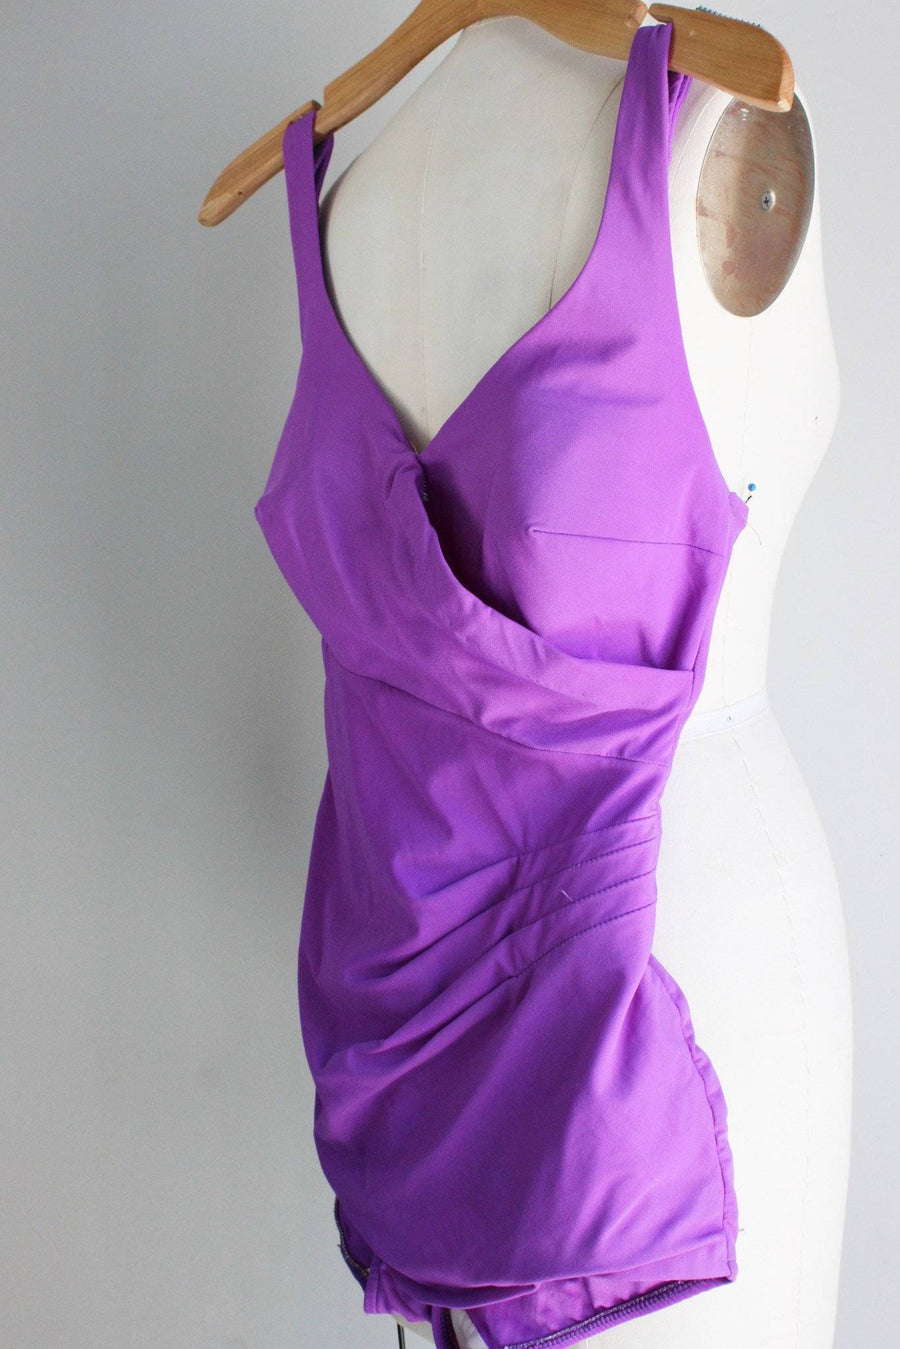 Vintage 1970s Purple Swimsuit, Roxanne Swimwear